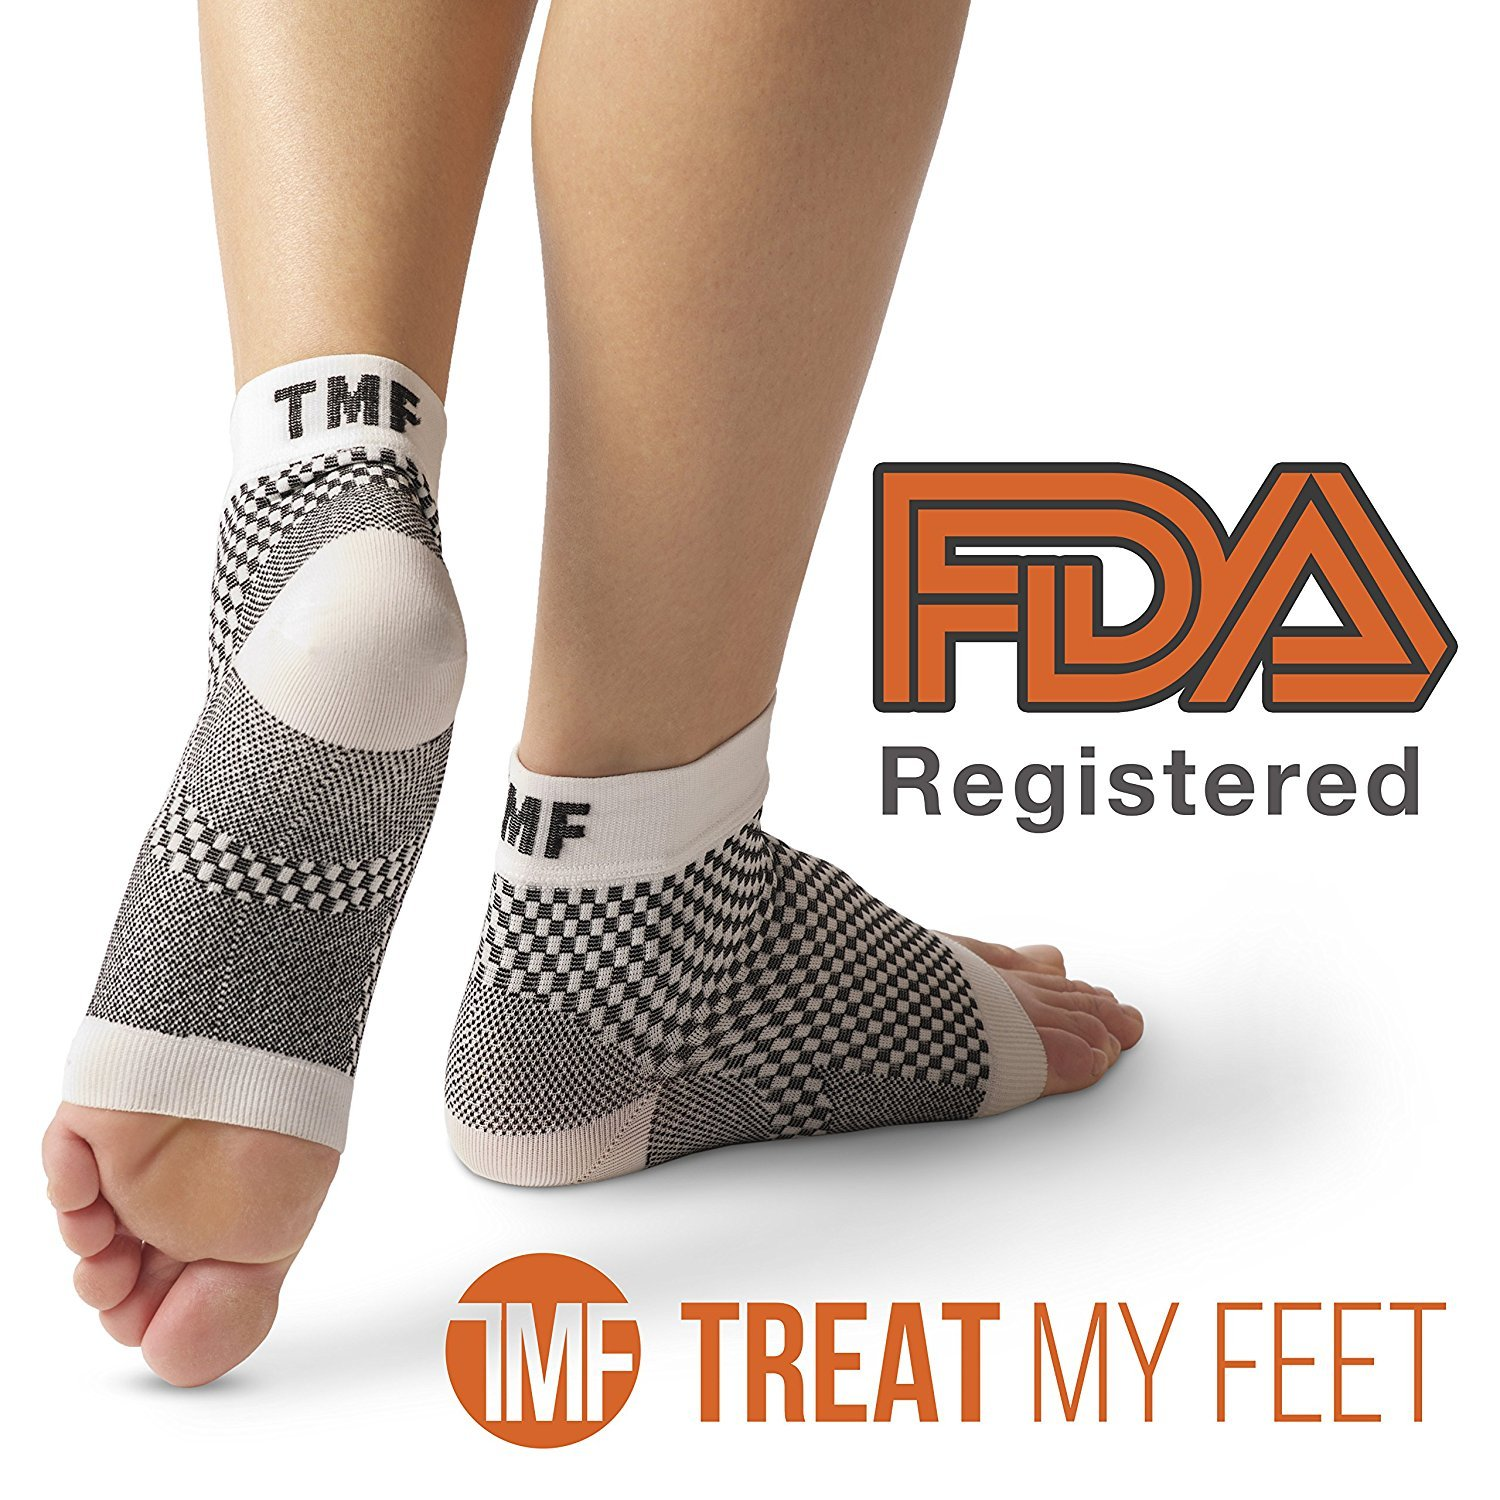 Plantar Fasciitis Support & Ankle Compression Socks For Feet: FDA-Registered Stocking For Heel, Arch Support - Edema Relief Orthopedic Socks For Men & Women Great Fit Guaranteed By Treat My Feet - XL by Treat My Feet